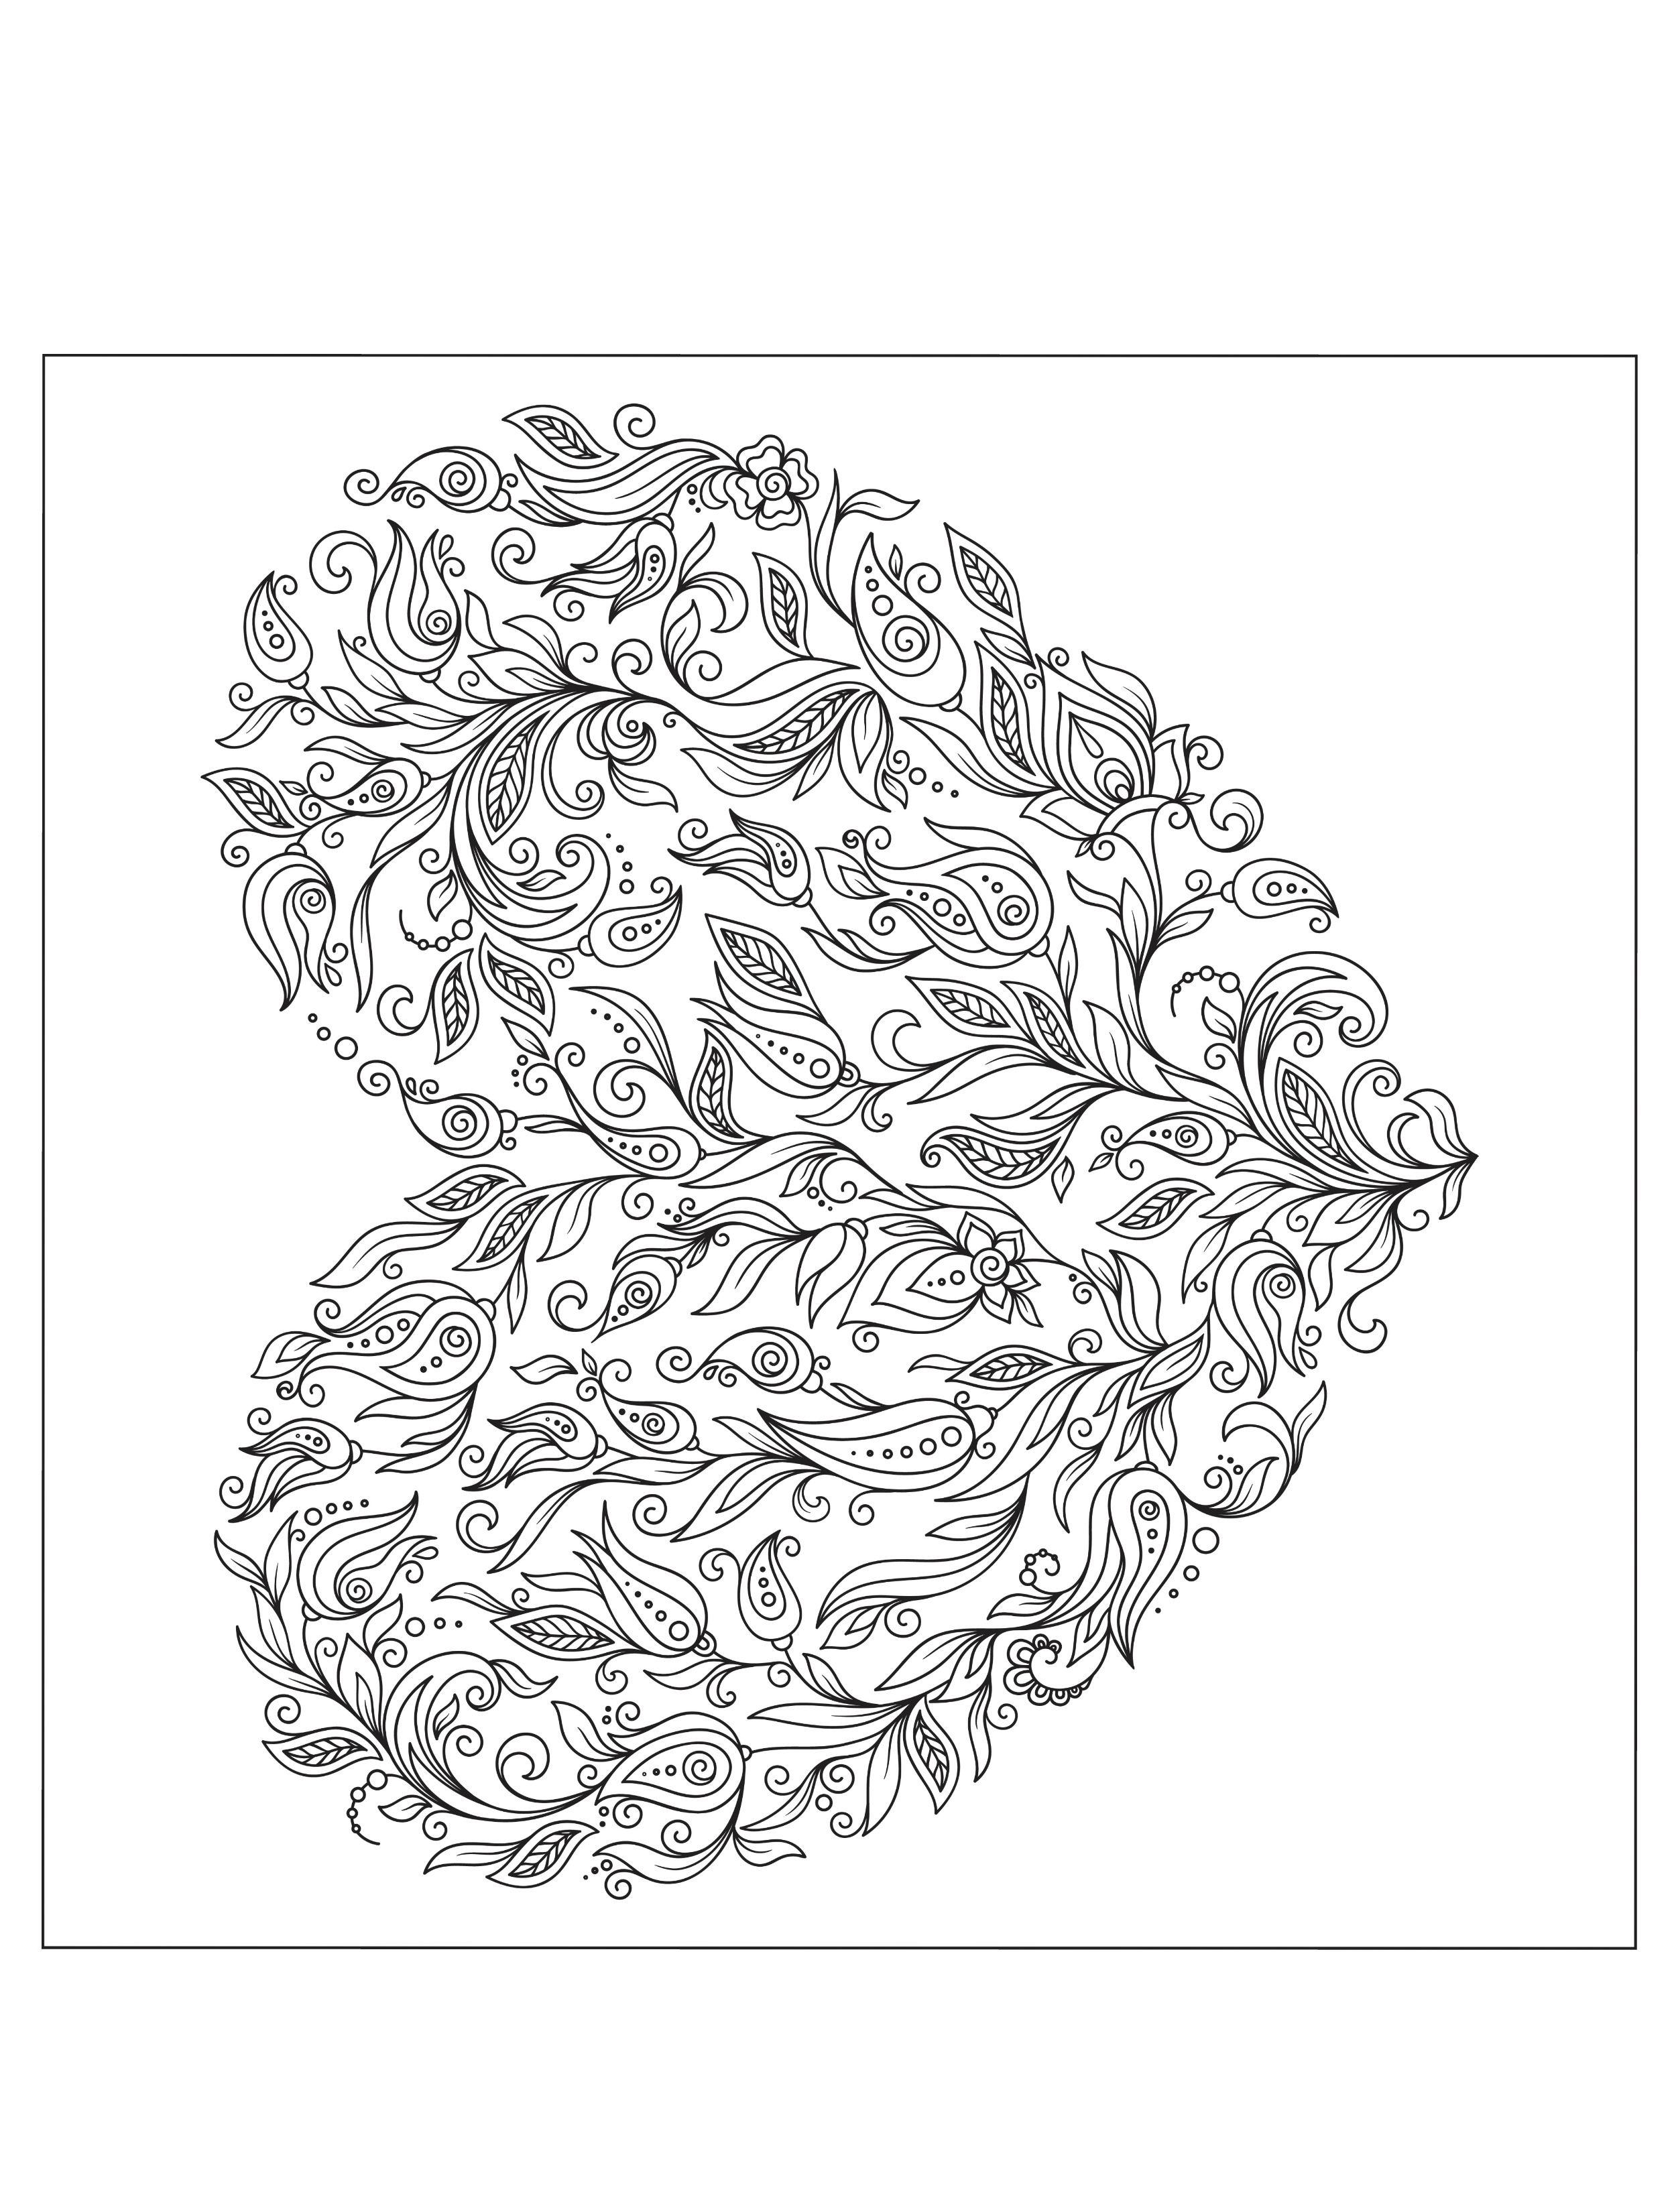 20 free printable valentines adult coloring pages page 16 of 20